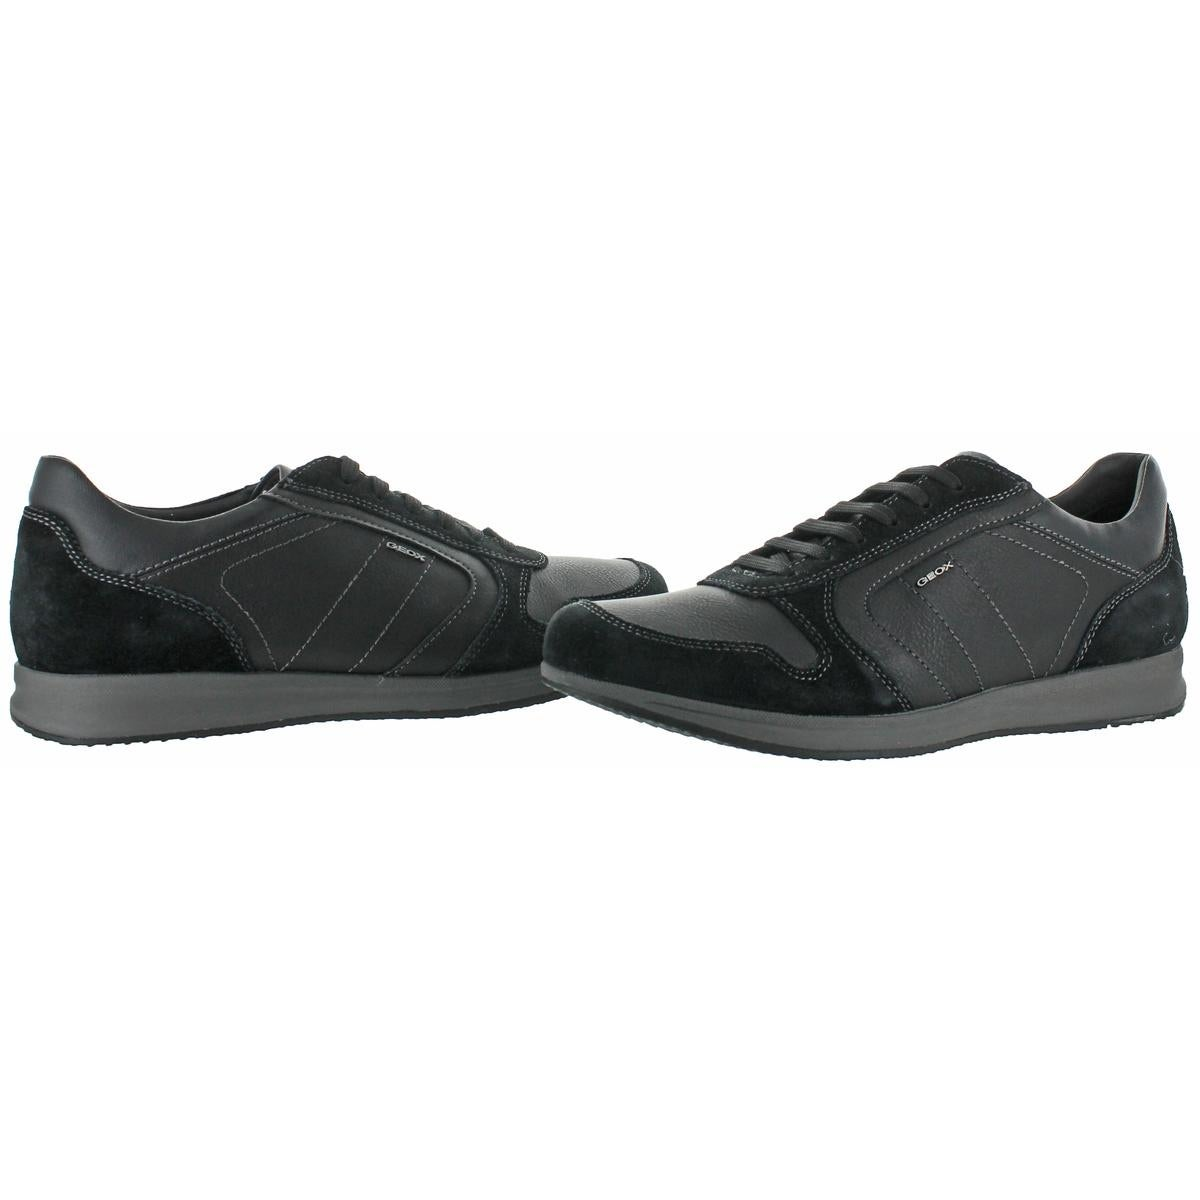 a5f33638b2 Shop Geox Respira Mens Avery Fashion Sneakers Mixed Media Breathable - Free  Shipping Today - Overstock - 23843865